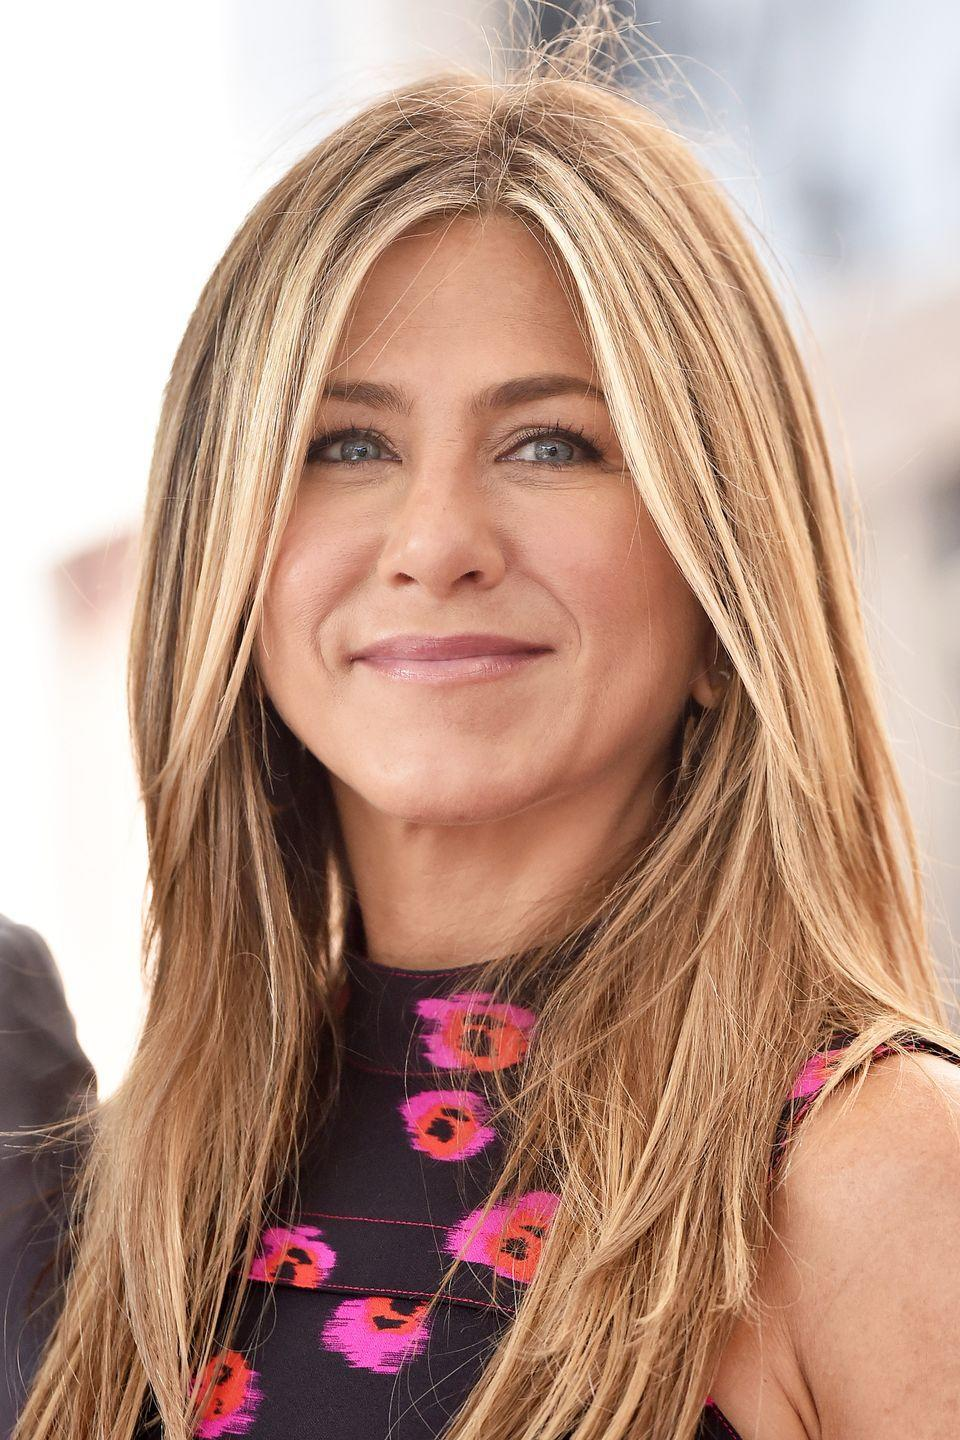 """<p><a href=""""http://www.goodhousekeeping.com/life/a42902/what-jennifer-aniston-eats-in-a-day/"""" rel=""""nofollow noopener"""" target=""""_blank"""" data-ylk=""""slk:Jennifer Aniston"""" class=""""link rapid-noclick-resp"""">Jennifer Aniston</a> has been a warm, golden blonde for many years now. Why mess with a good thing?</p>"""